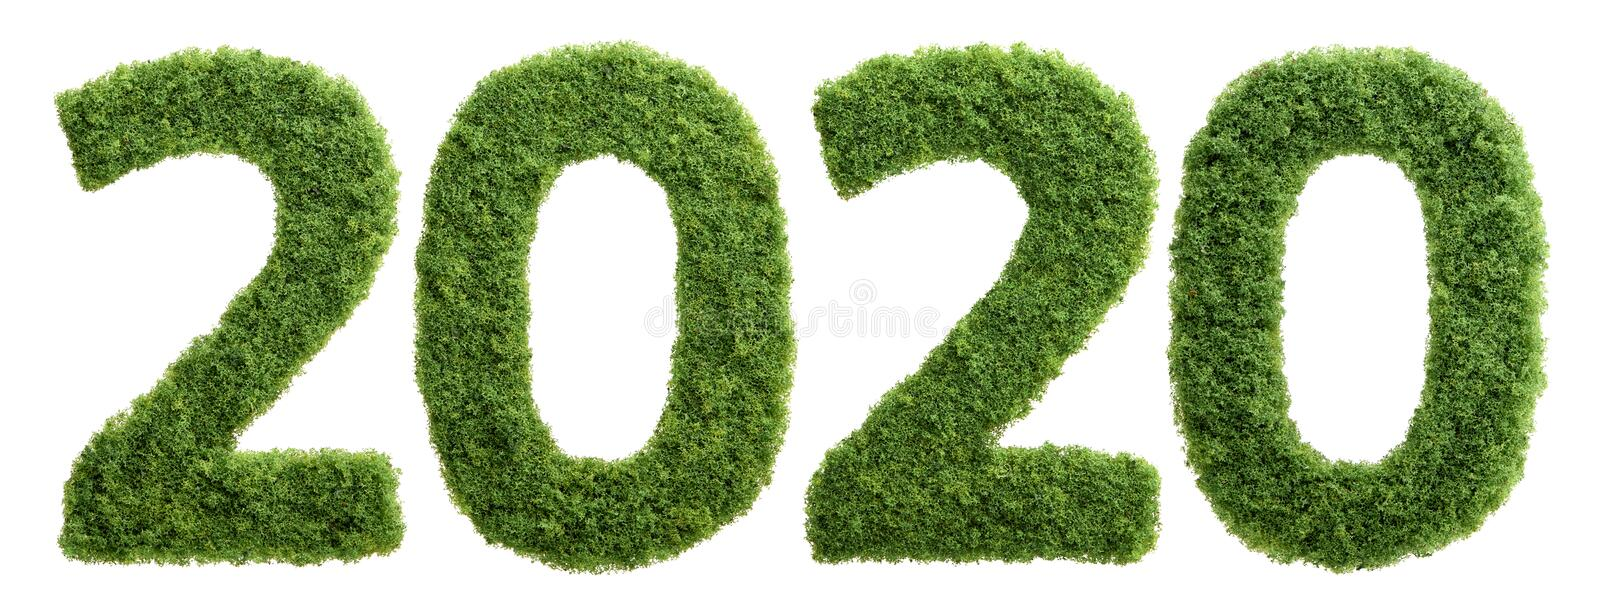 2020 green grass ecology year concept isolated stock photo